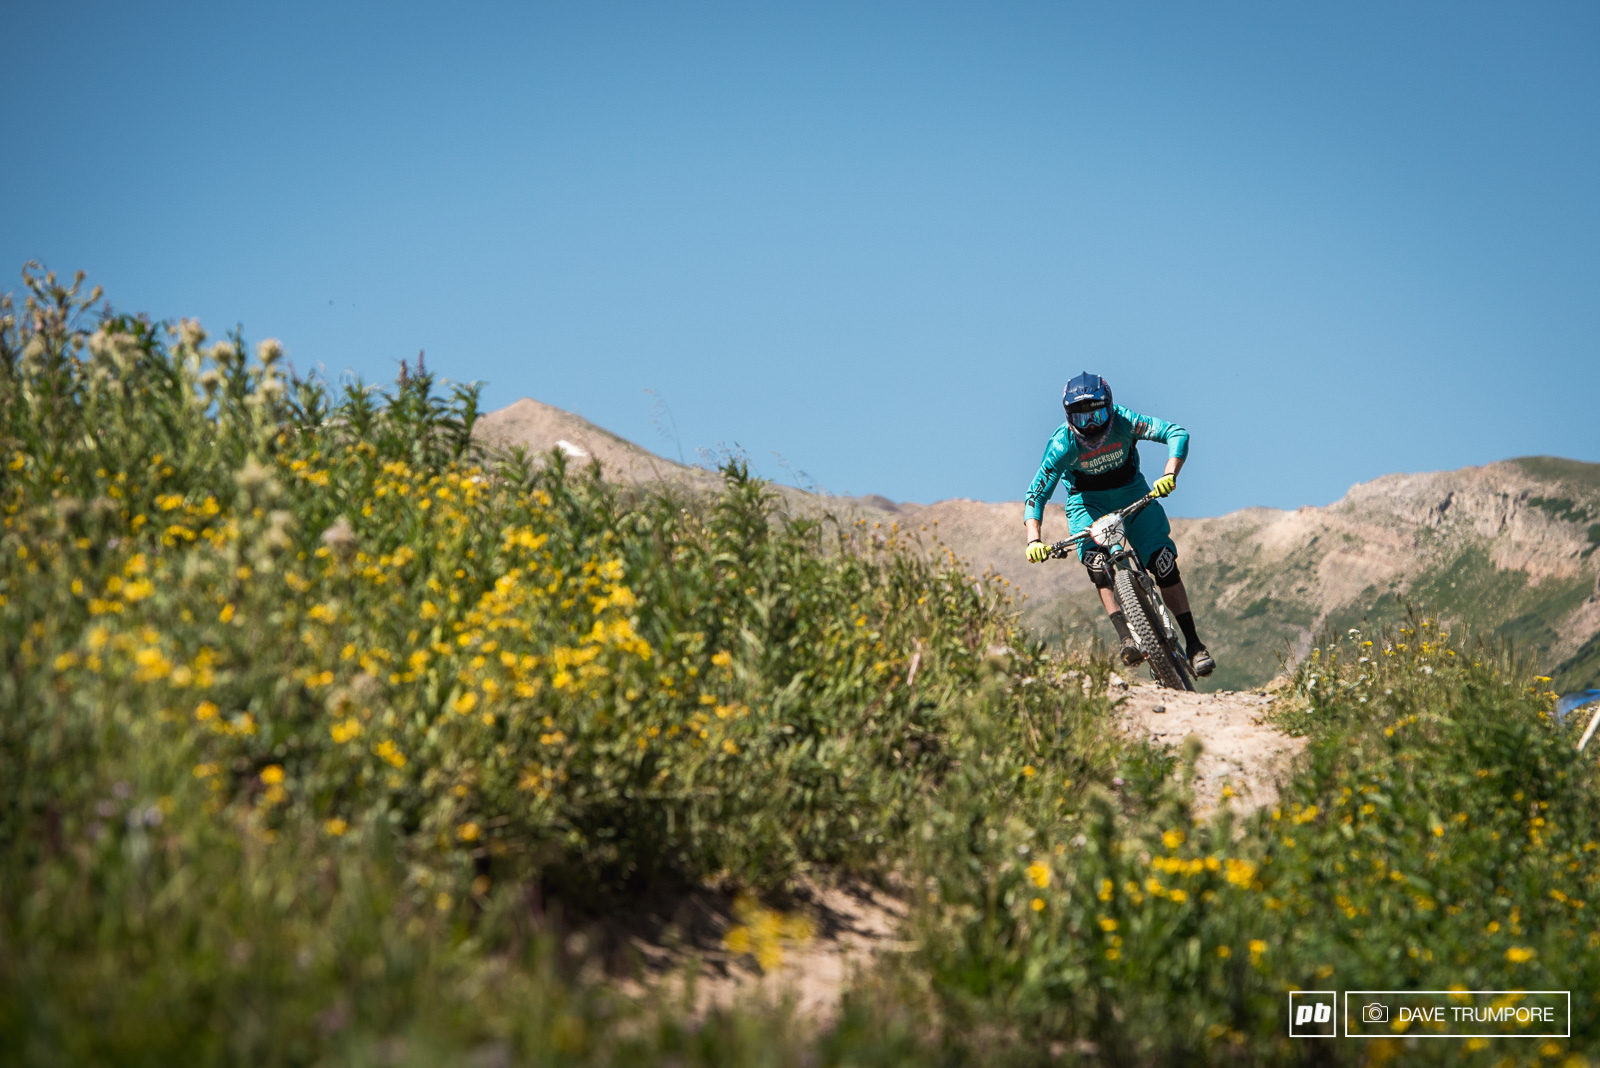 Another local who could do well is Nate Hills. A former Big Mountain Enduro champion he is always strong at these long and high altitude events.